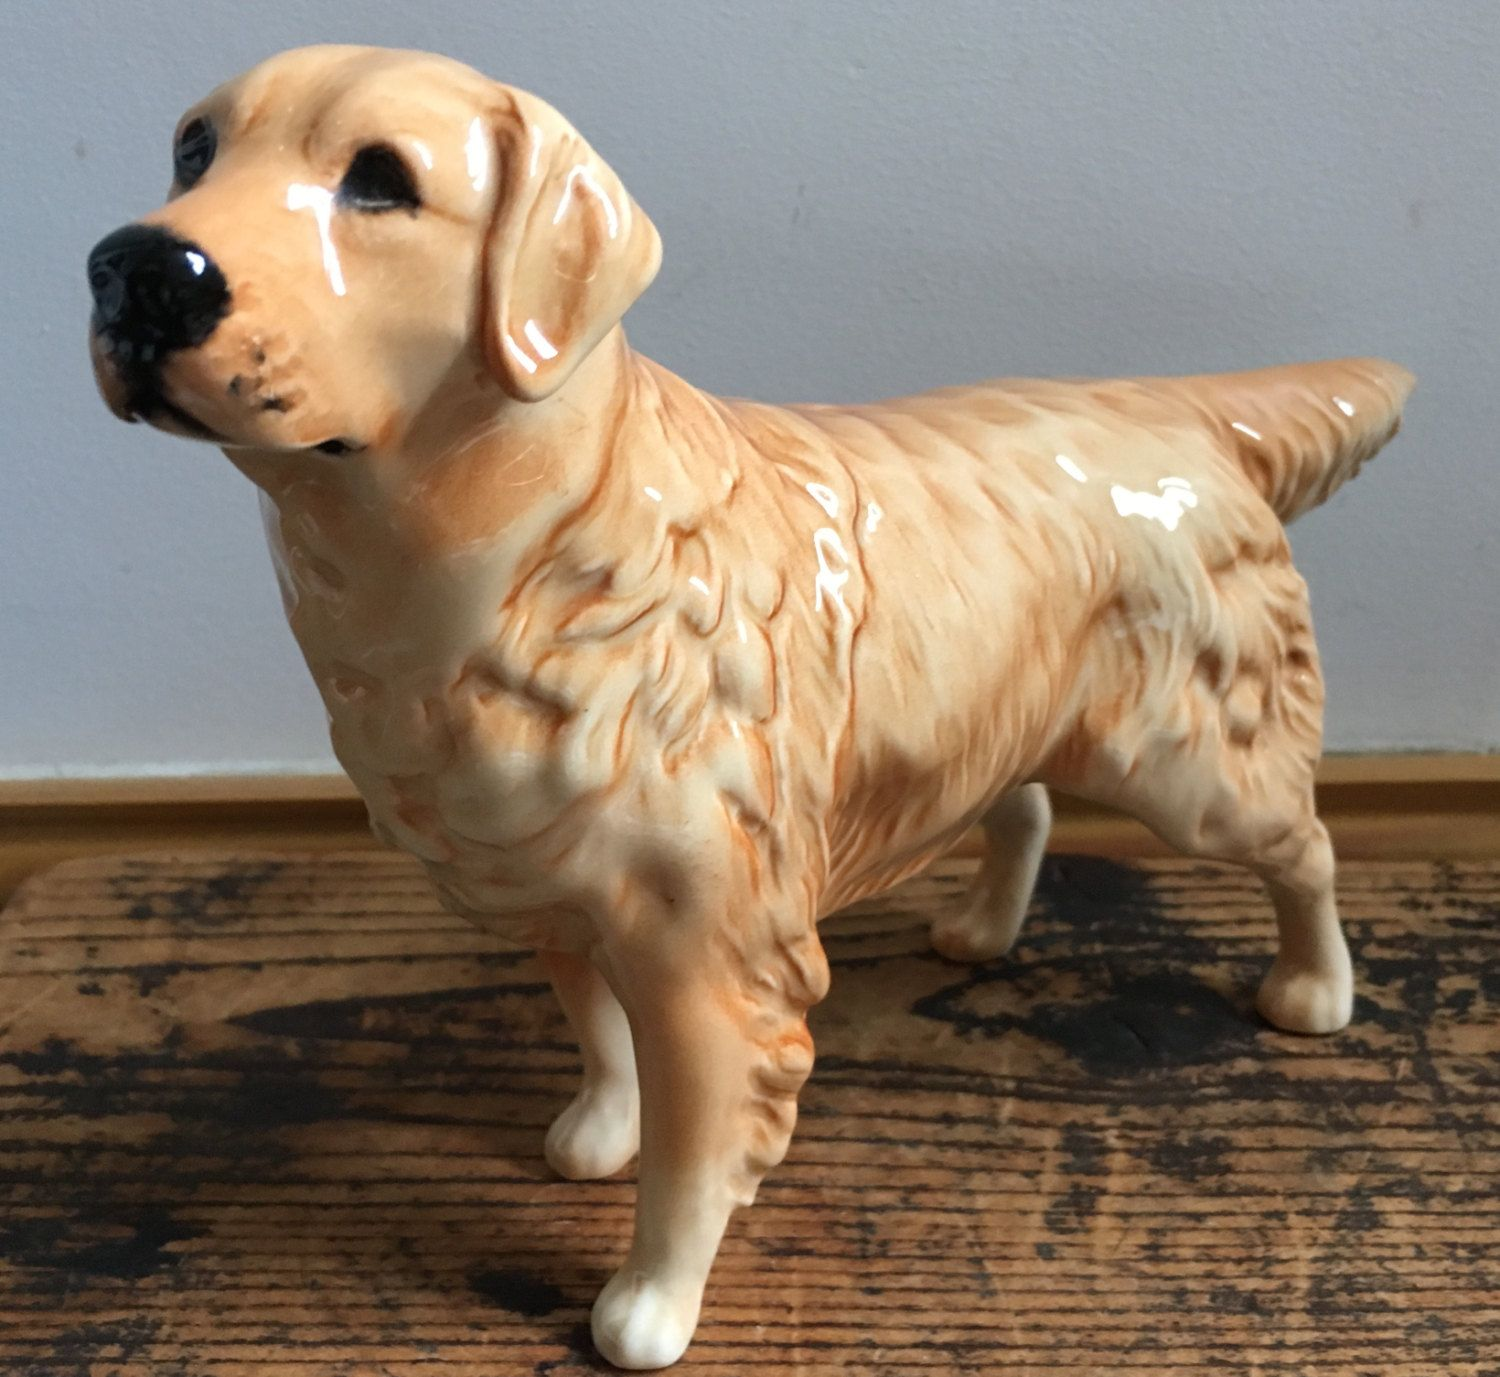 Vintage Beswick Golden Retriever Figurine Cabus Cadet Golden Retriever Dog Figurines Golden Retriever S